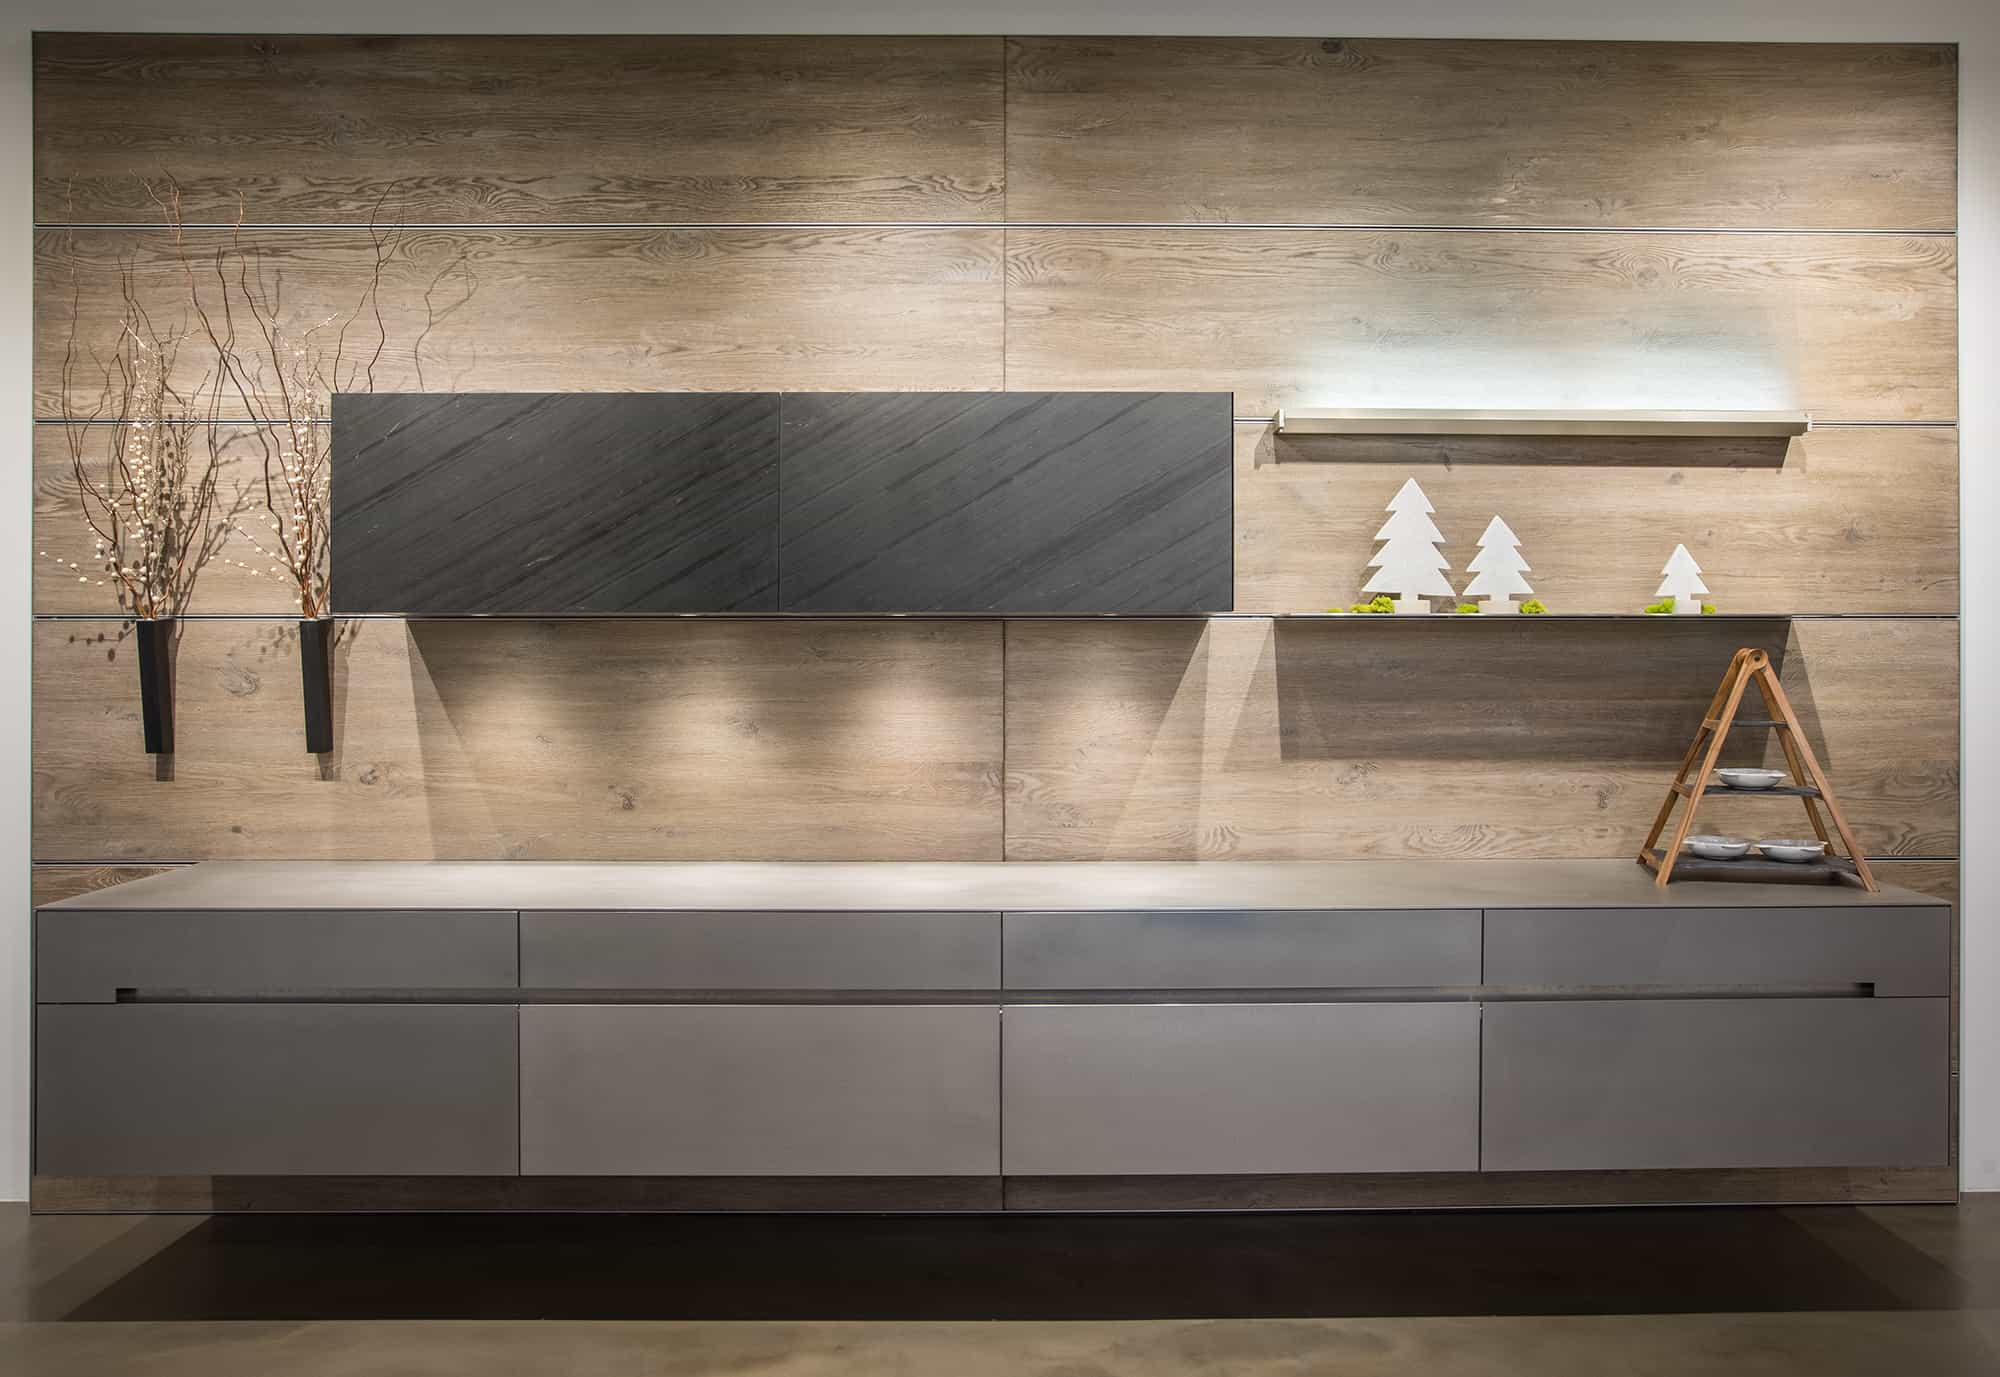 suspended credenza in Vancouver Brushed Oak Silverbrown | SilverTouch Stainless Steel finish with Phyllite Black Leather quartz